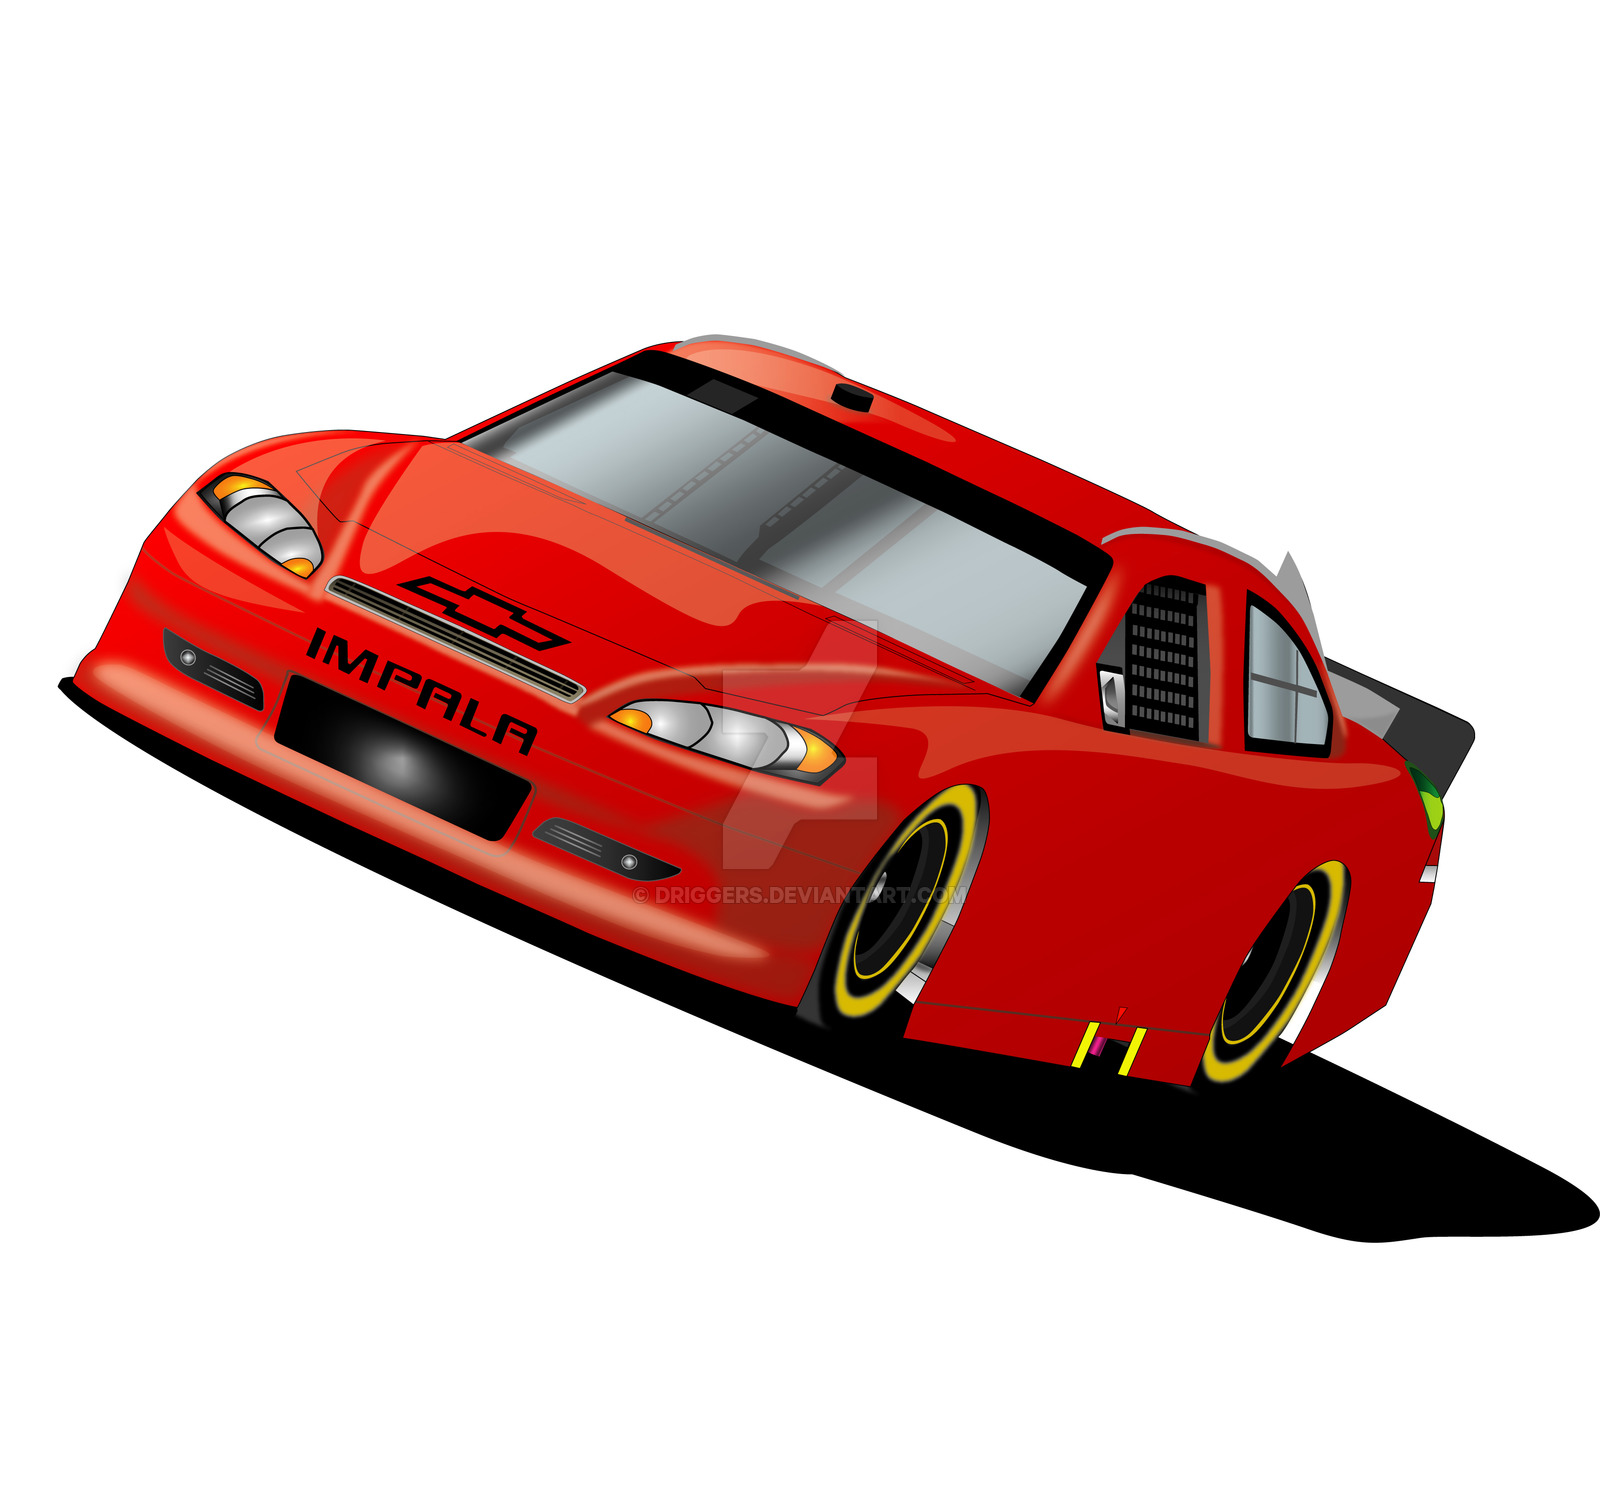 1600x1491 Nascar Sprint Cup Impala By Driggers On Clipart